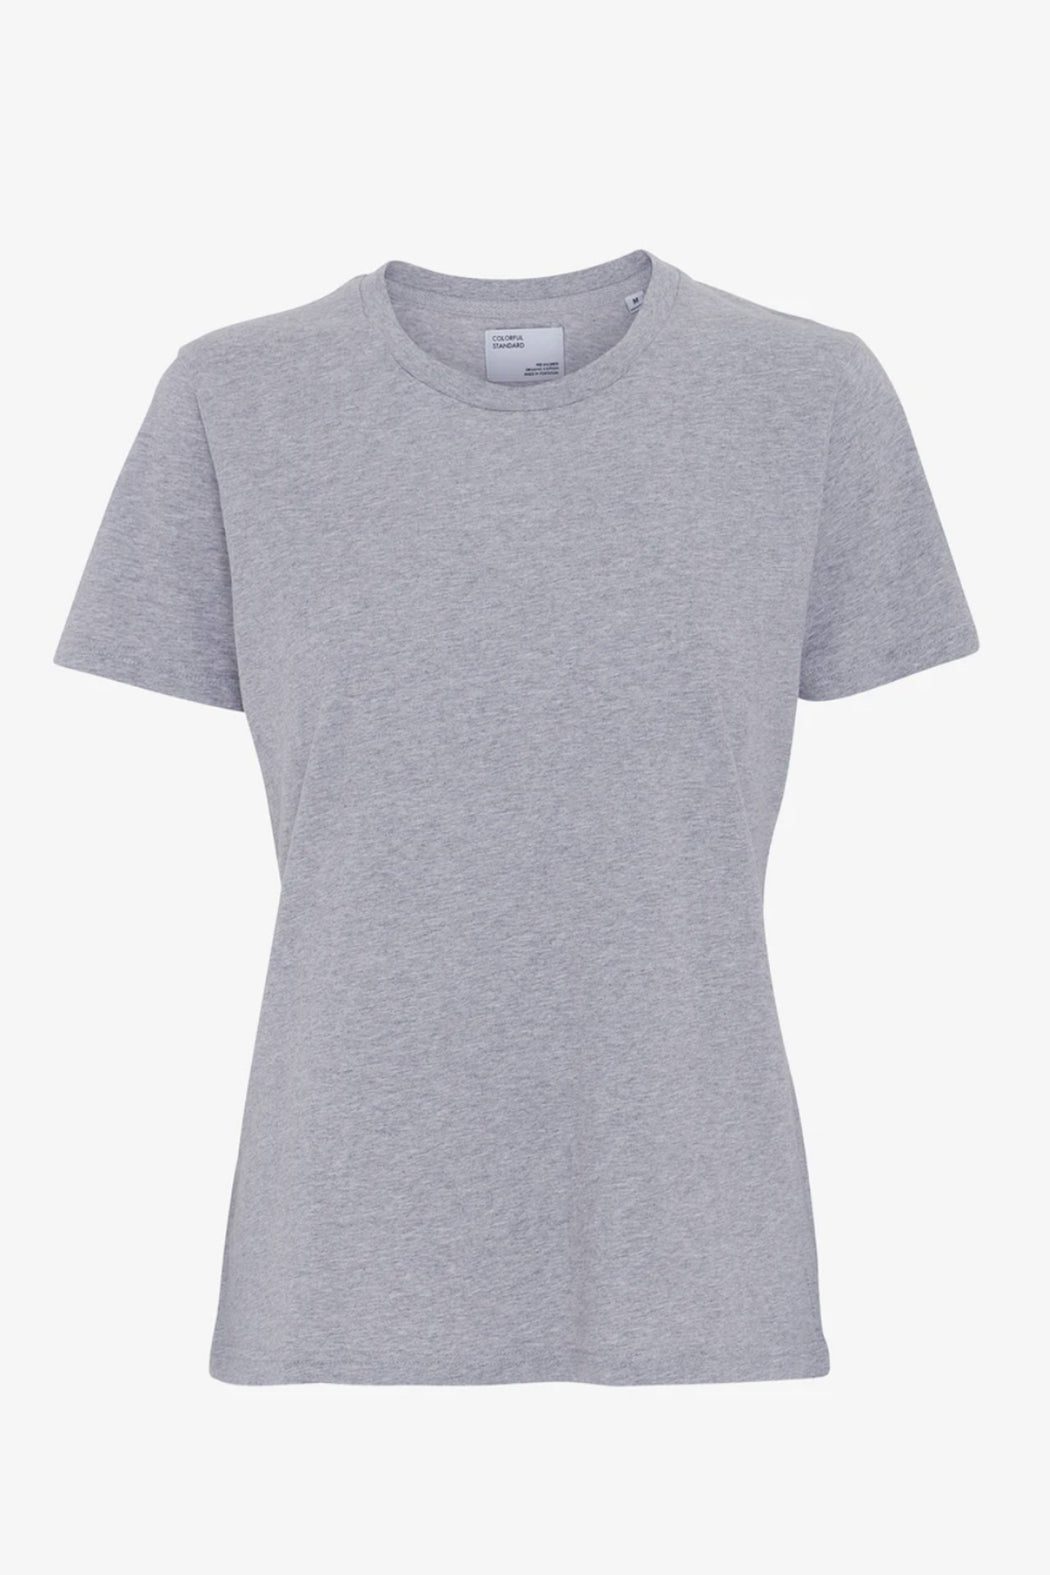 WOMAN LIGHT ORGANIC Tee heather grey